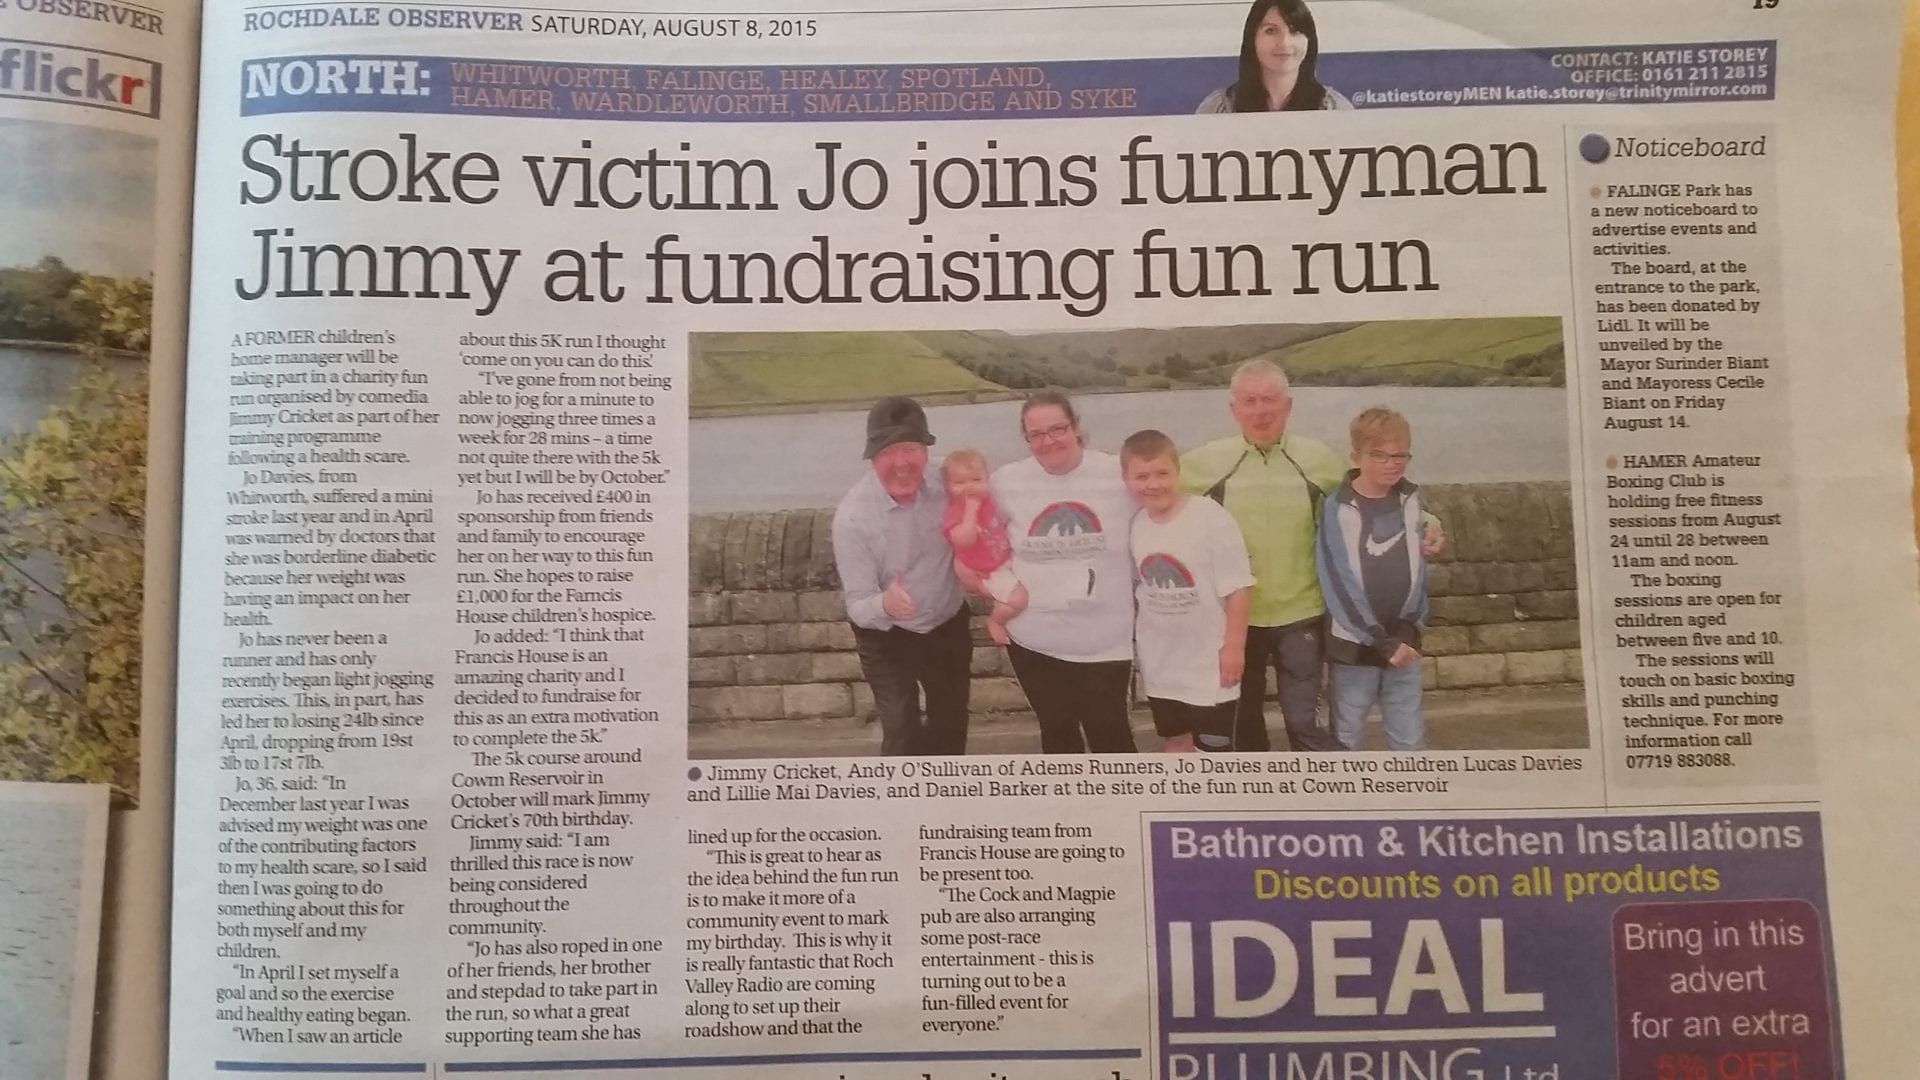 The Rochdale Observer published a story about Jimmy Cricket's charity fun run